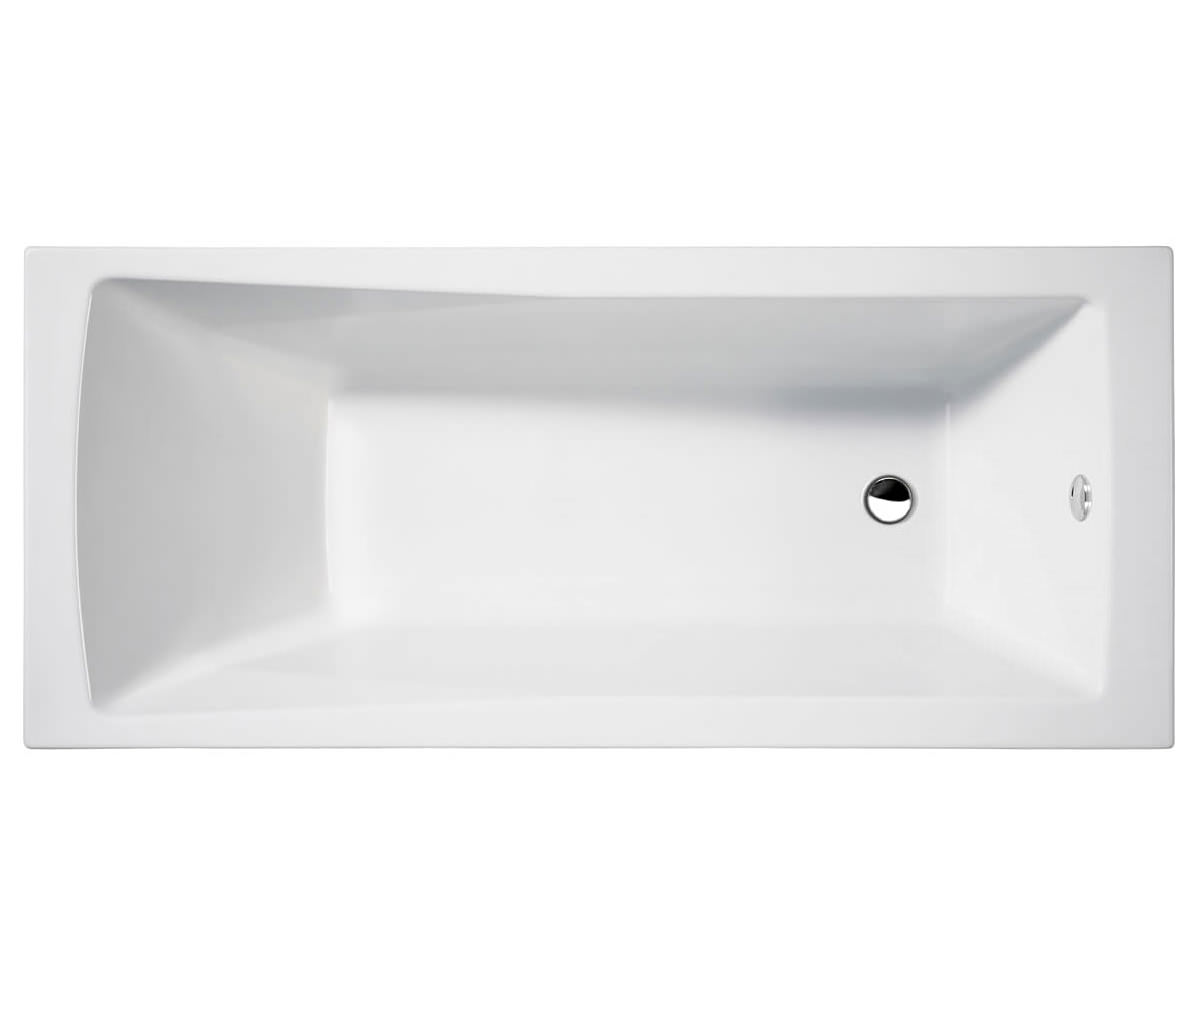 Cleargreen Sustain Single Ended Bath 1700 x 700mm  1700 x